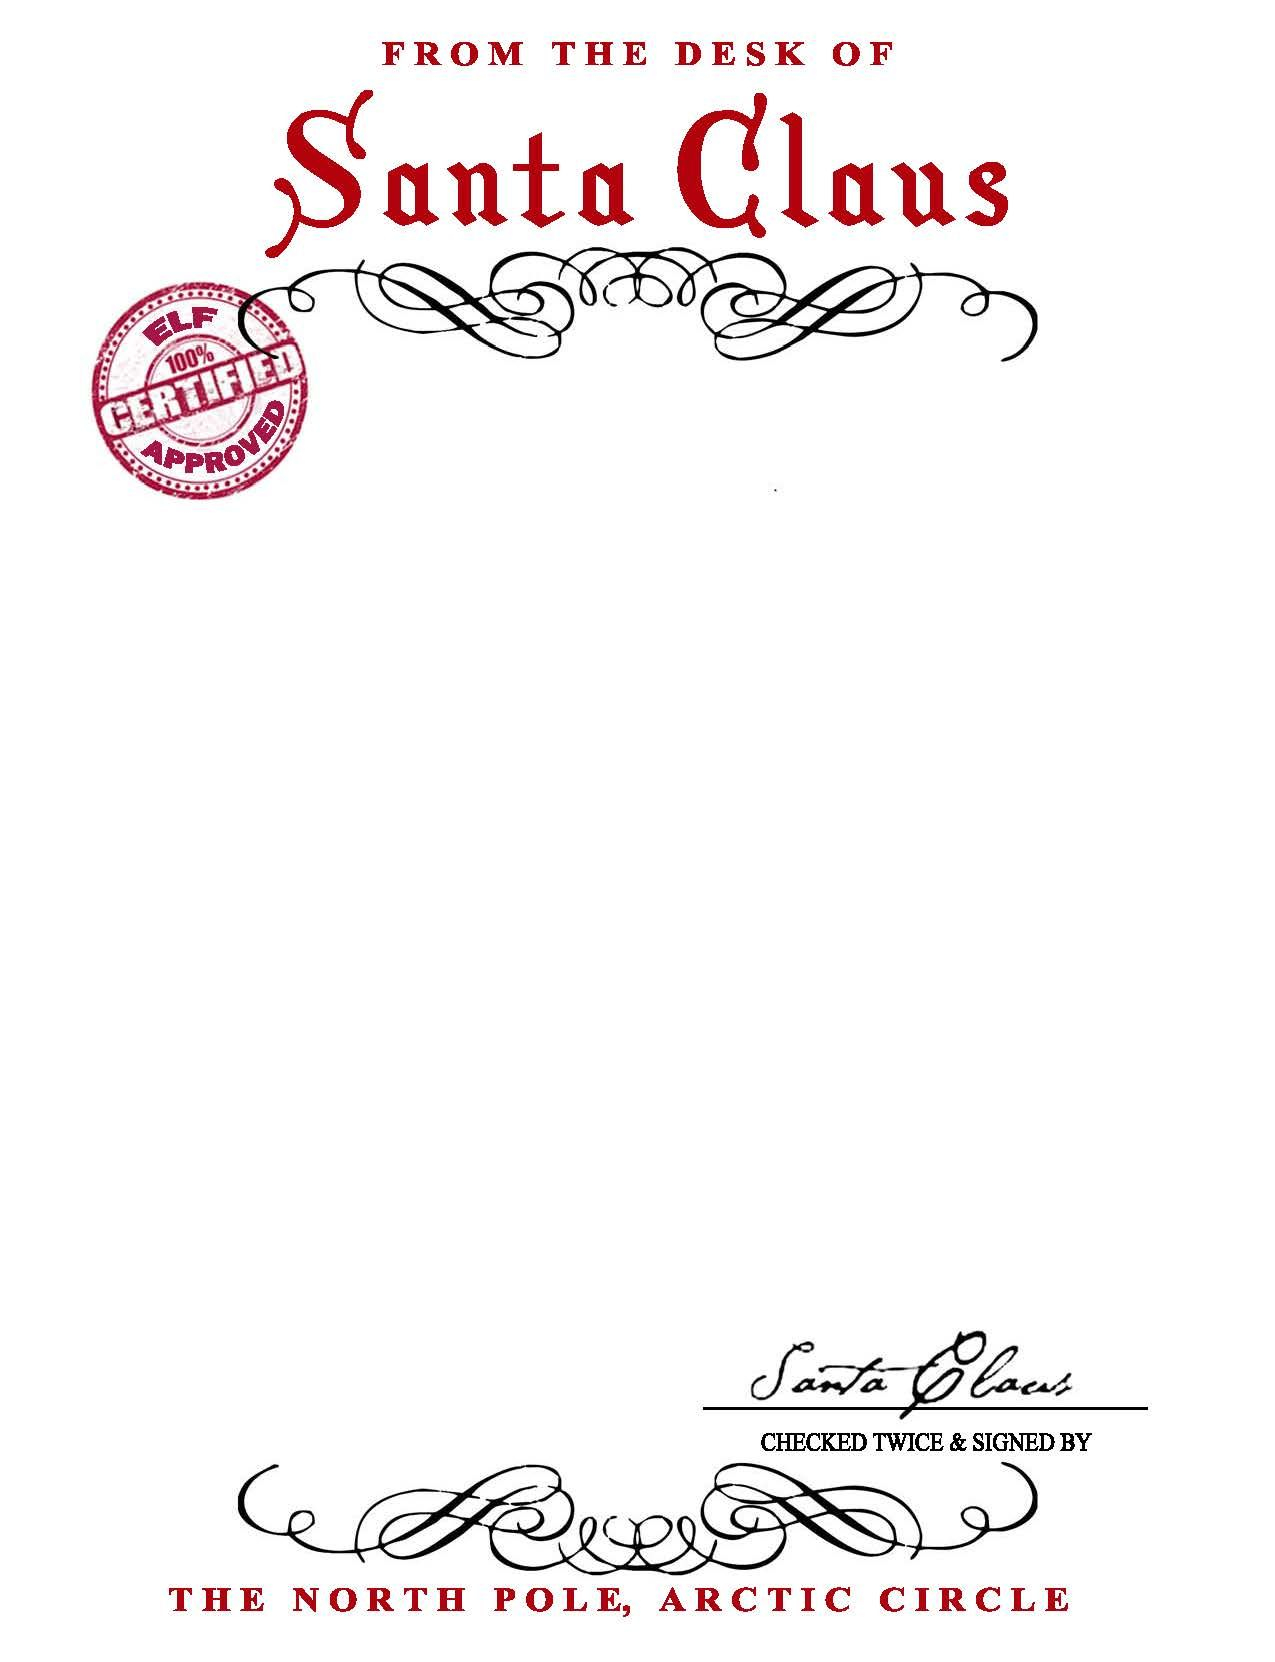 Letter to Santa Template Free Printable - Santa Claus Letterhead Will Bring Lots Of Joy to Children